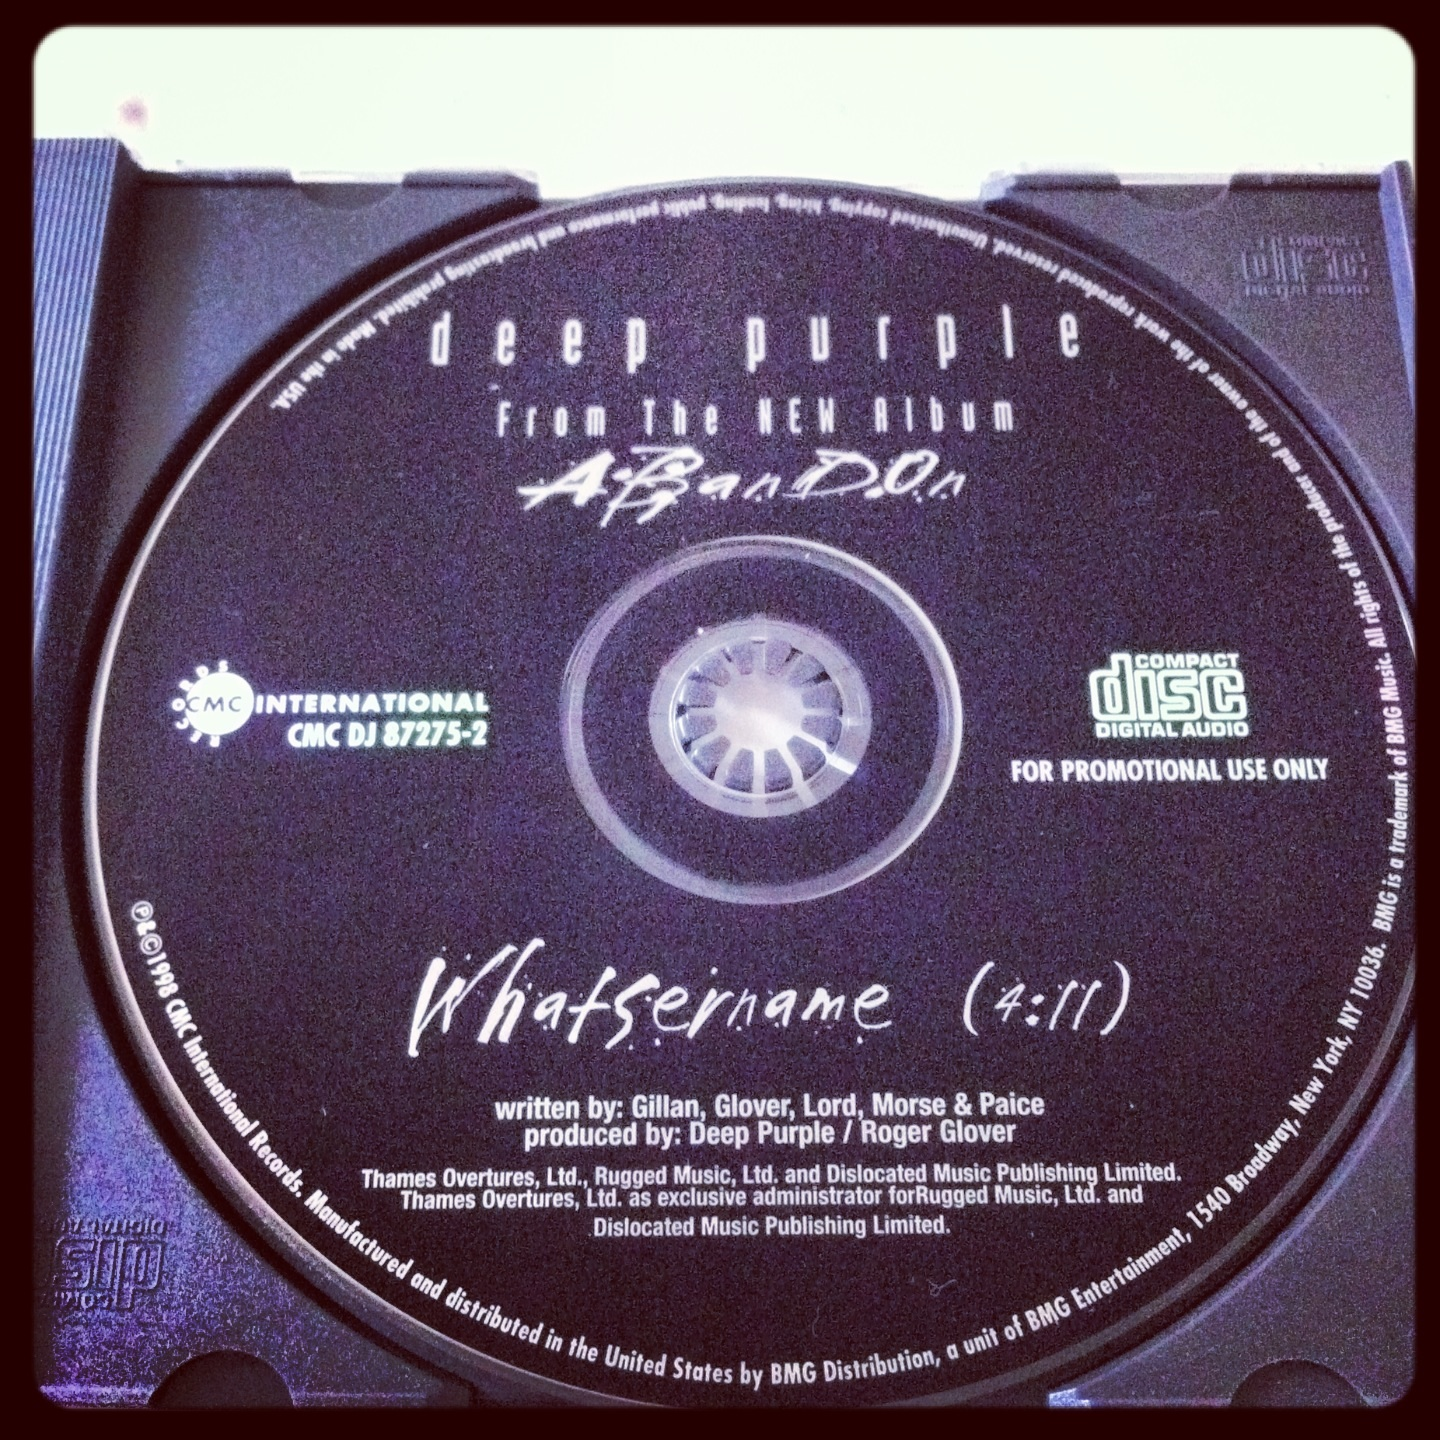 Whatsername promo single.